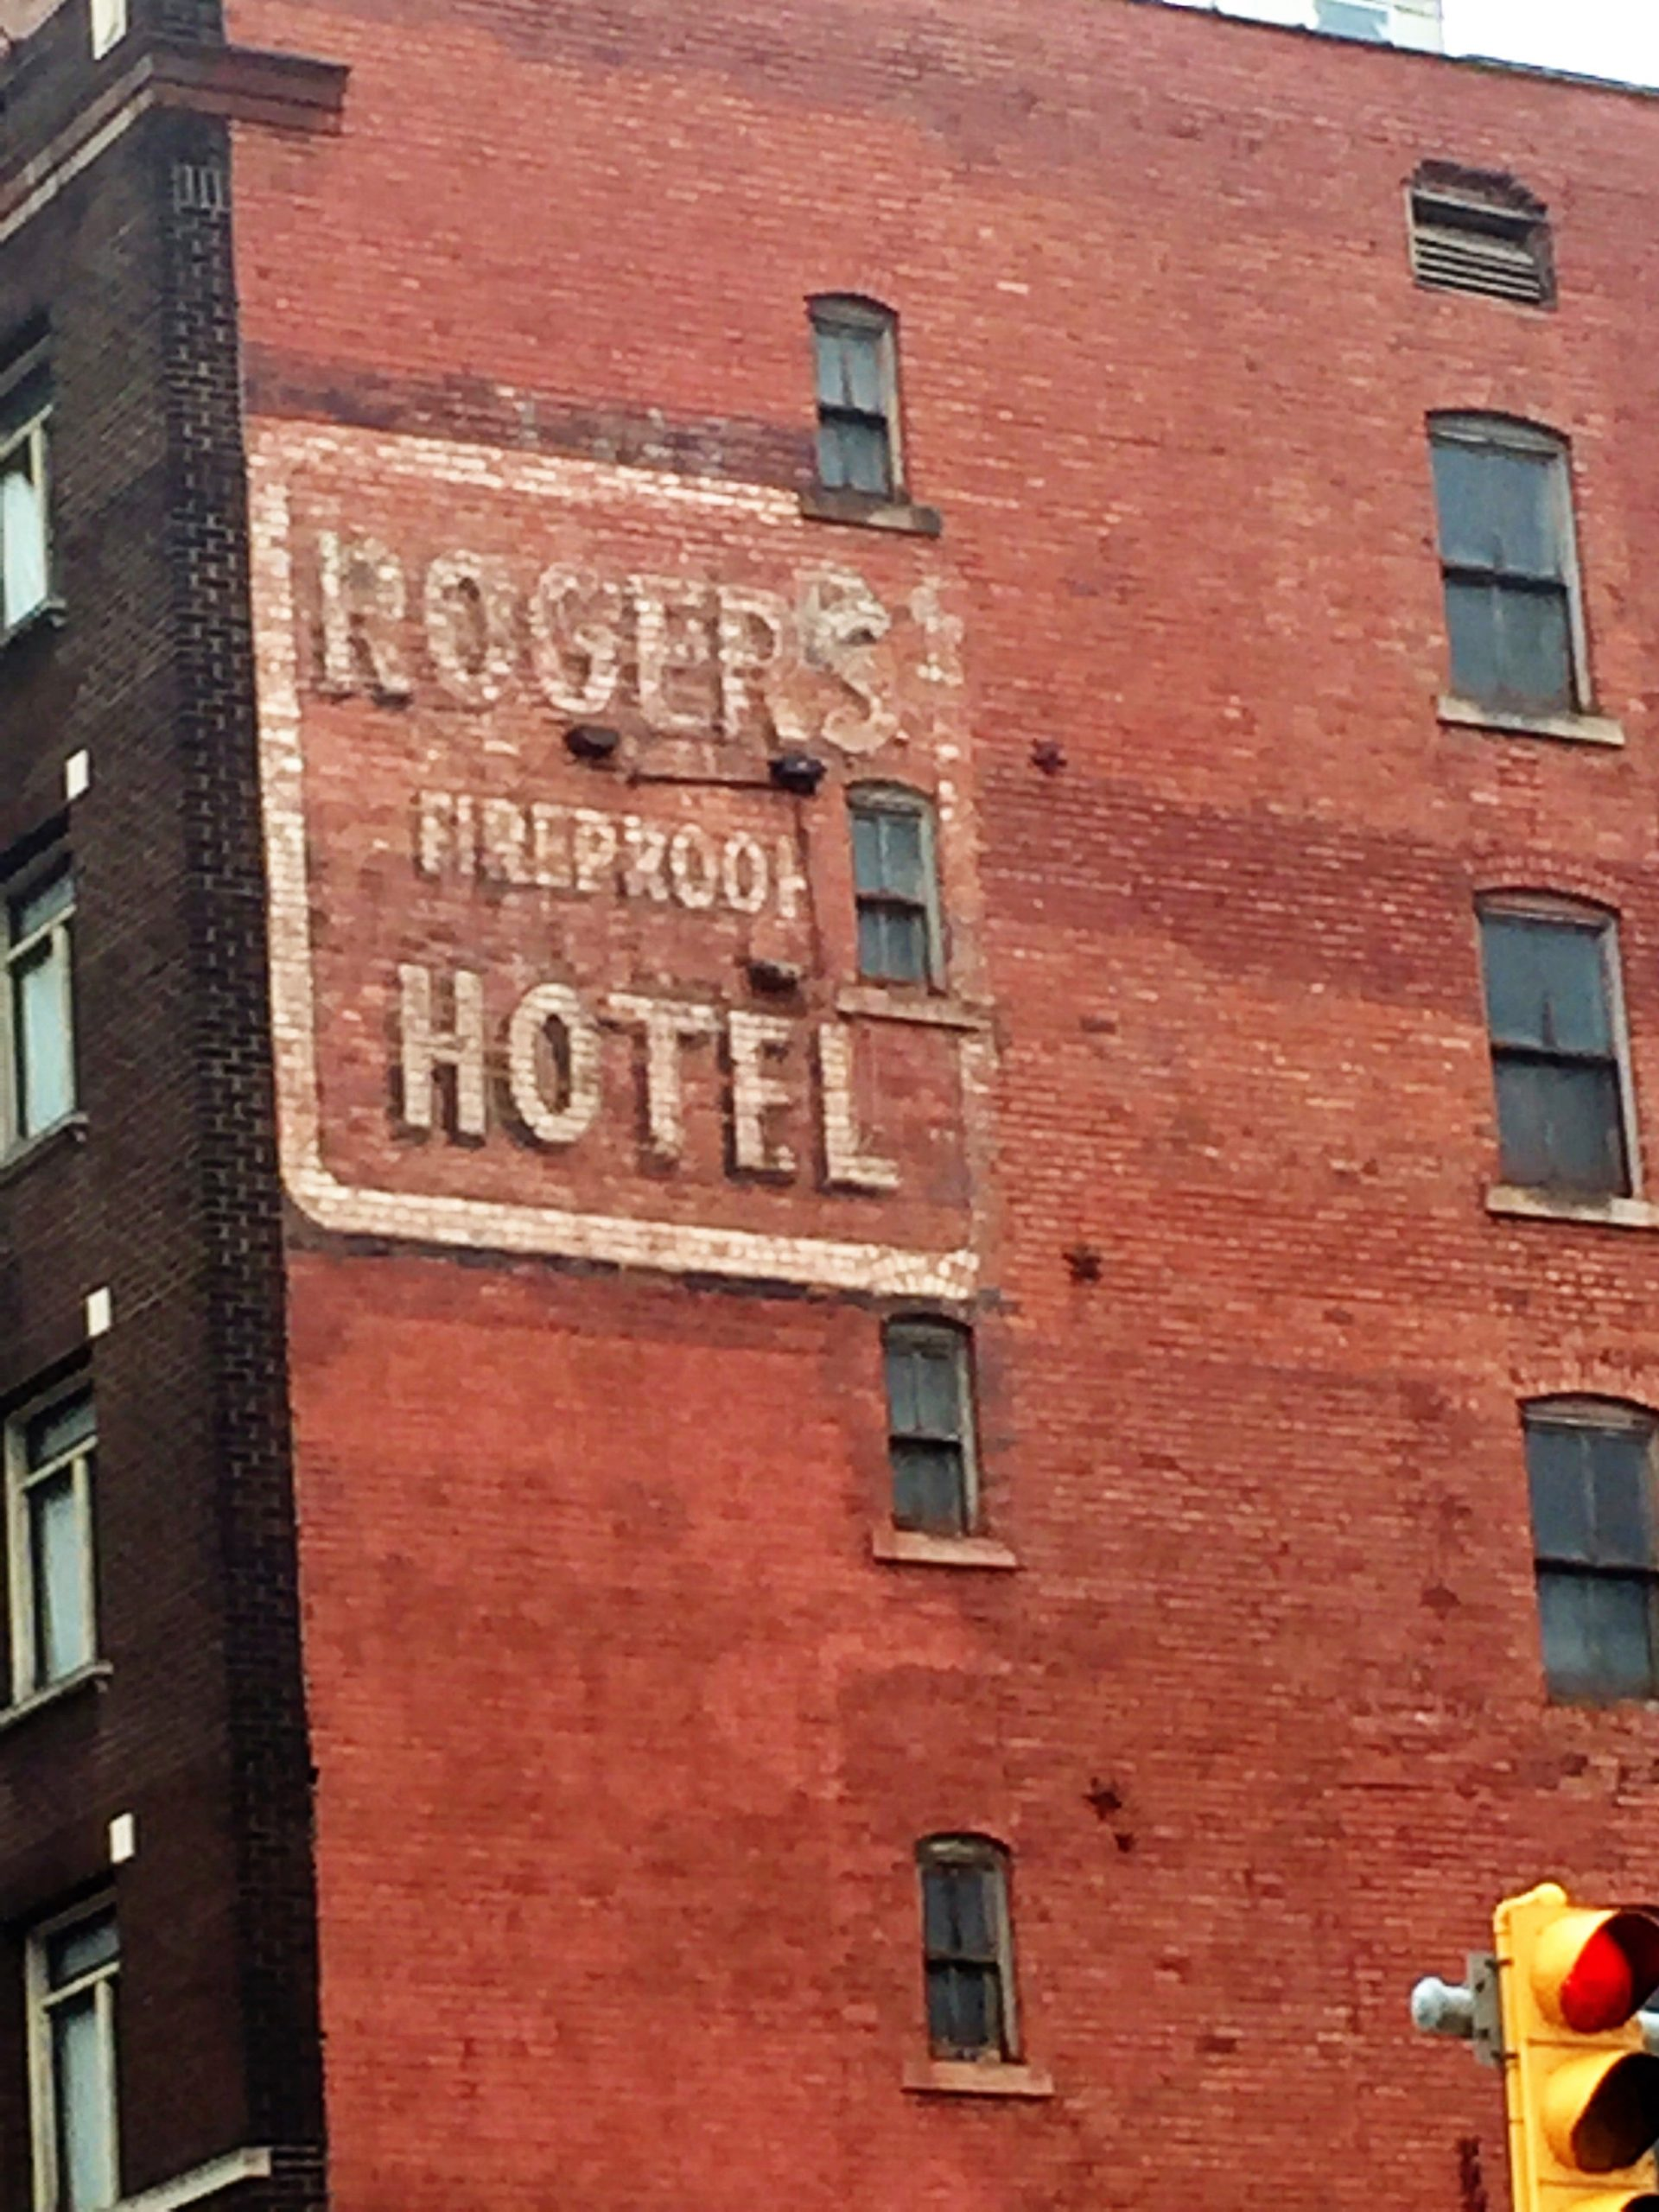 rogers hotel